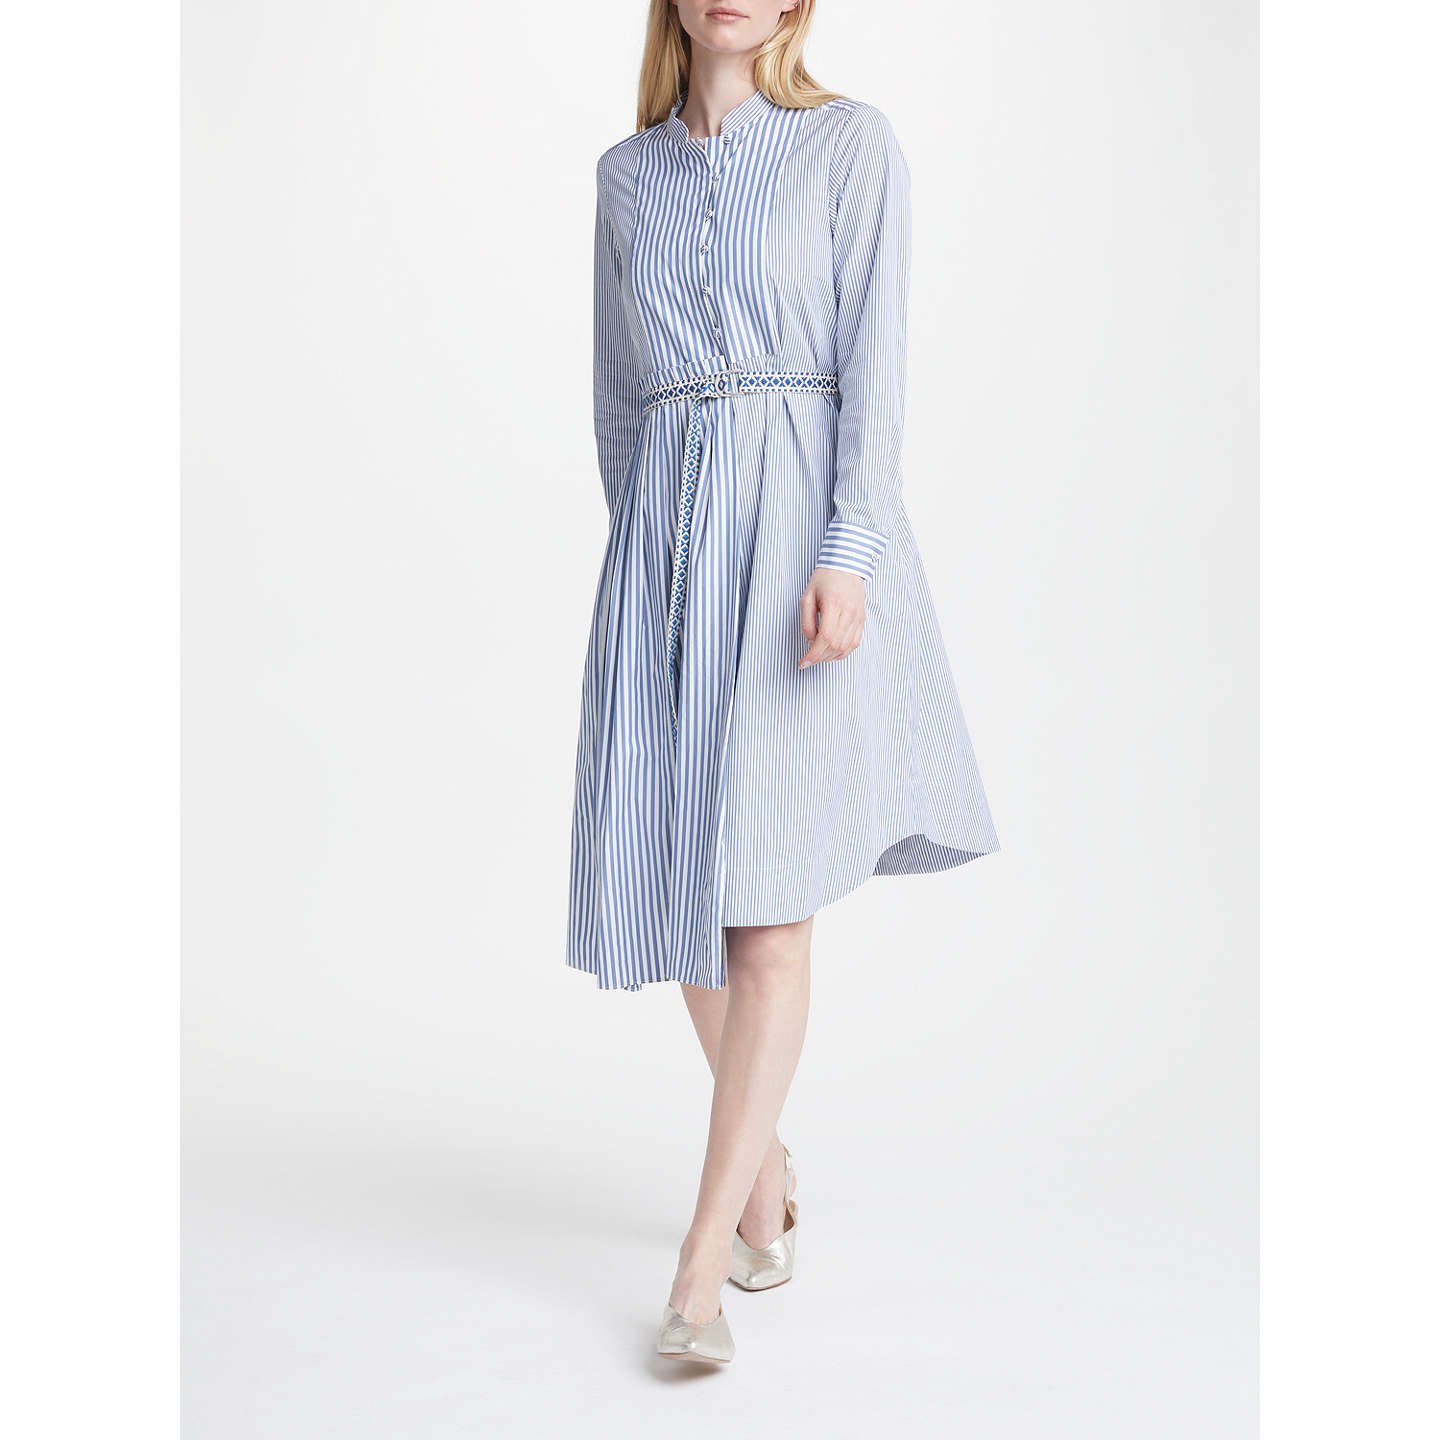 BuyWeekend MaxMara Aerovia Cotton Poplin Dress, Blue, 8 Online at johnlewis.com